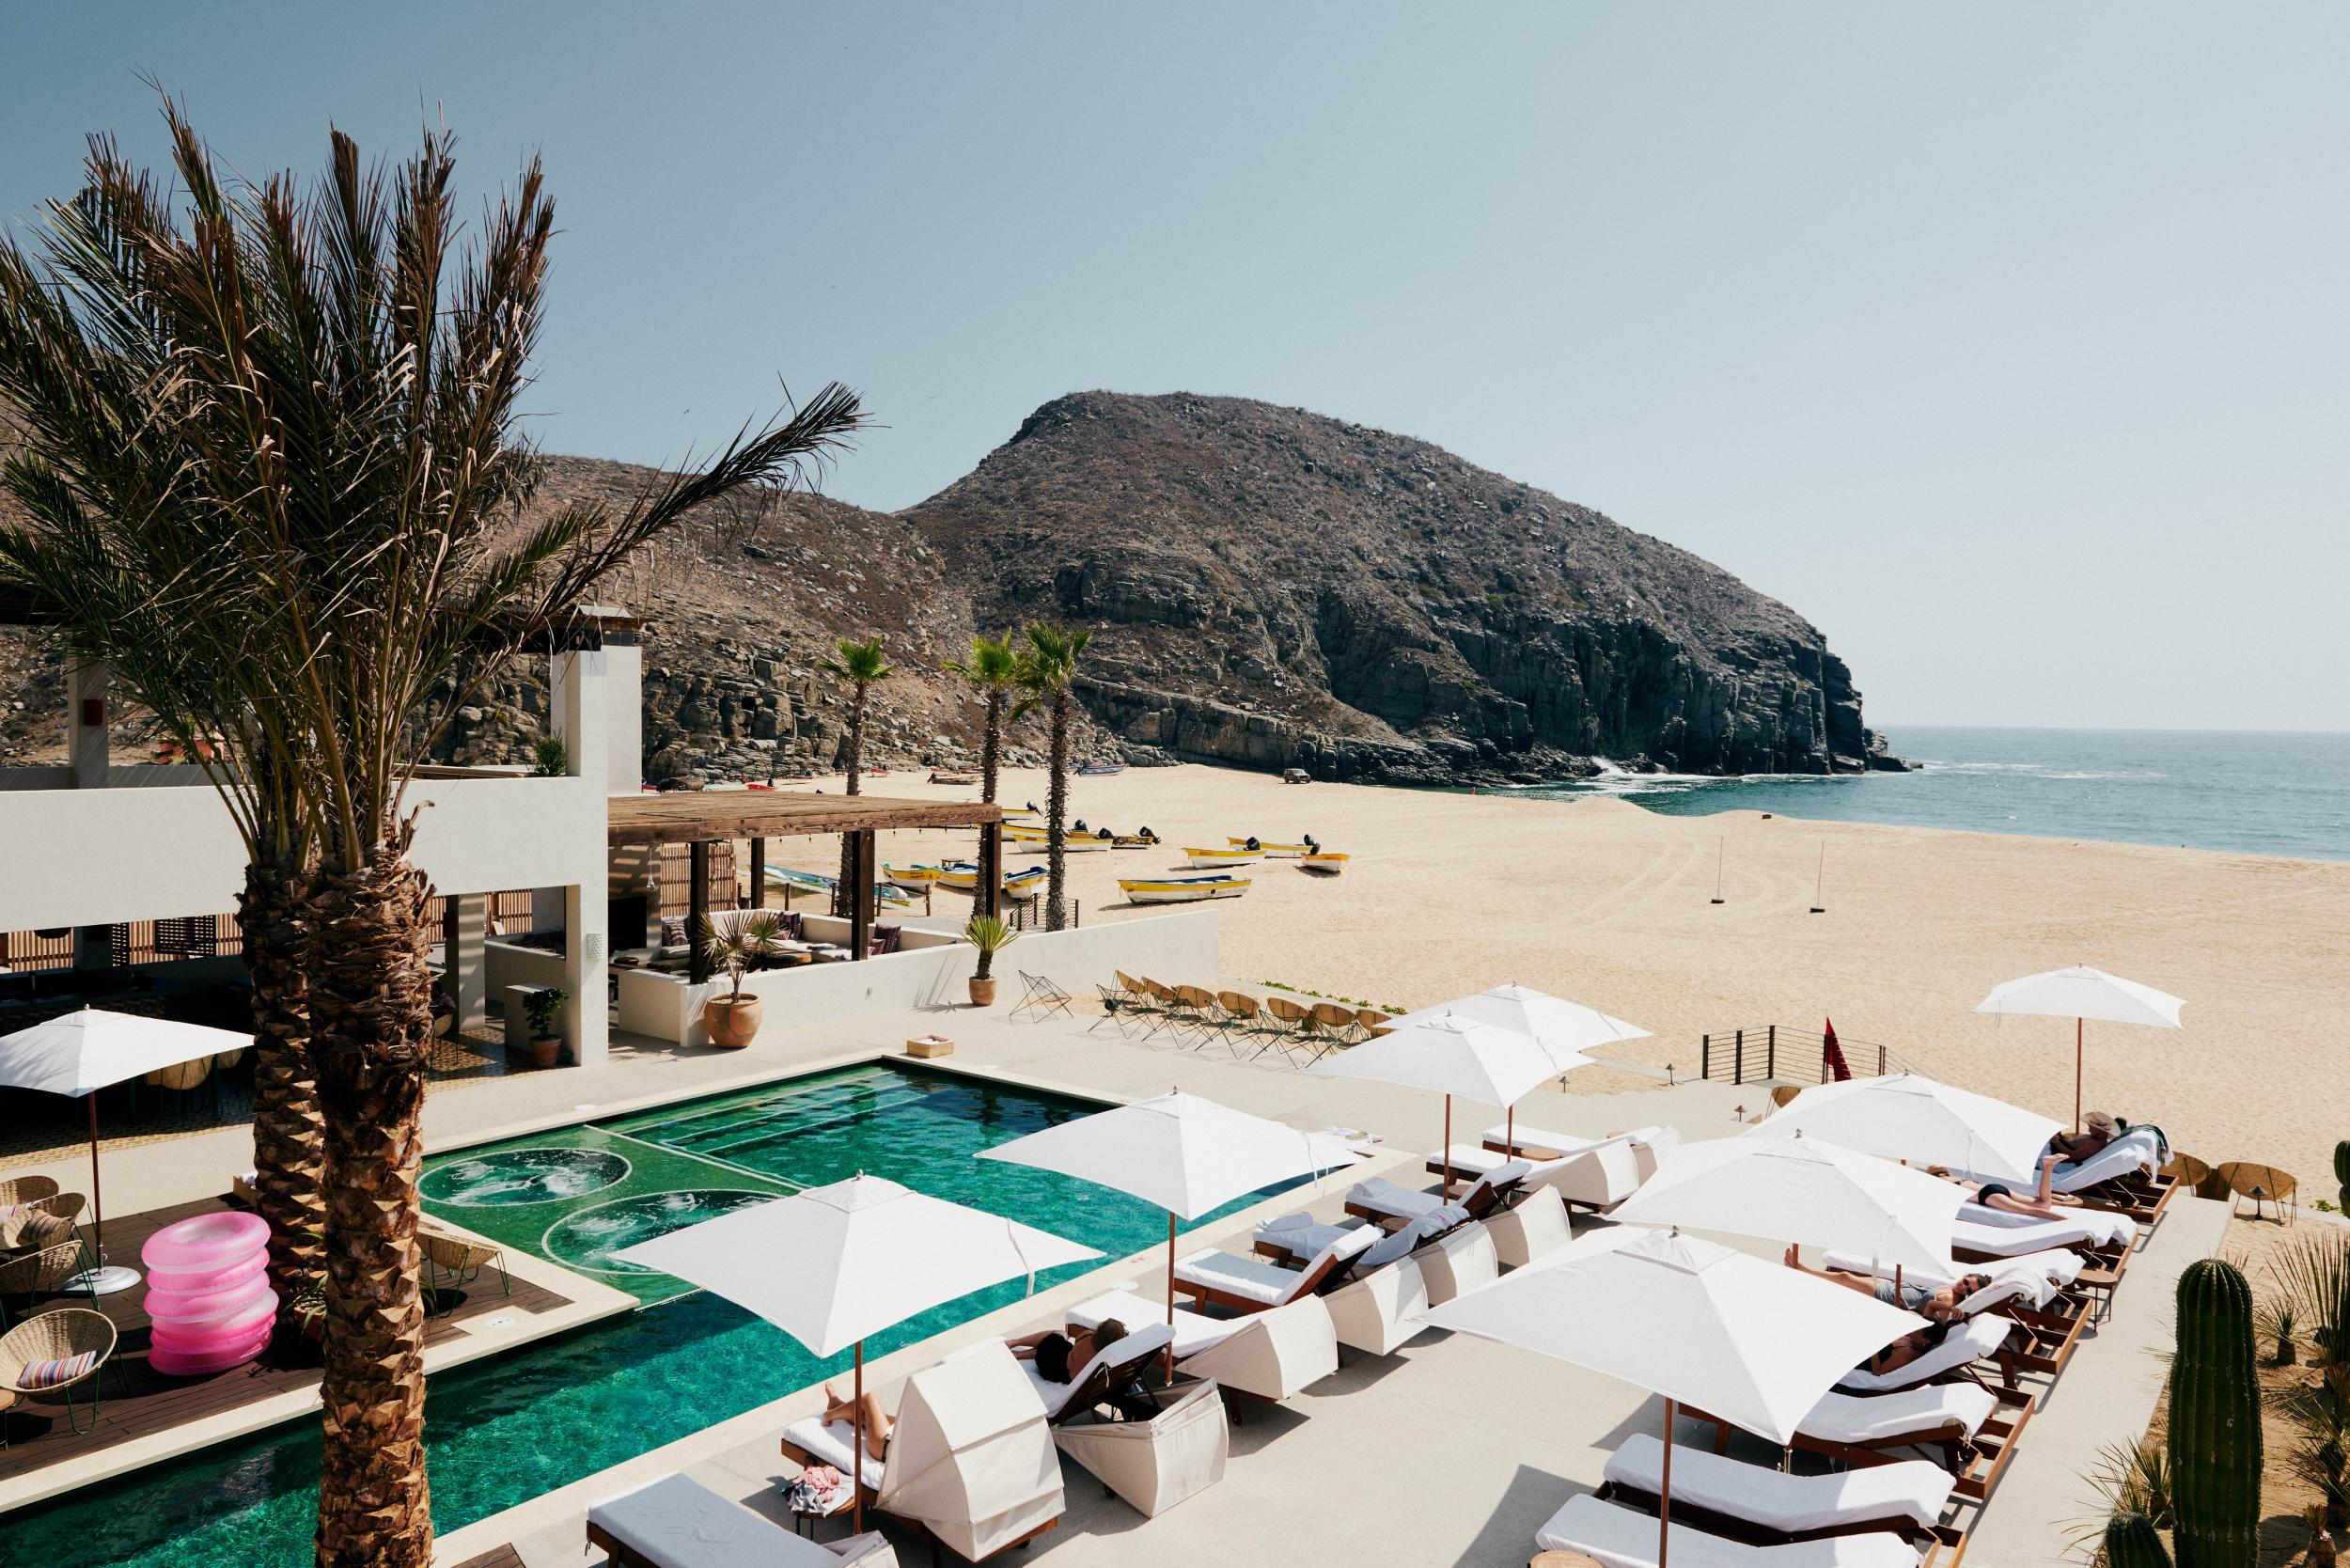 Poolside image of Hotel San Cristobal Cabo | How to Have the Perfect Vacation in Cabo